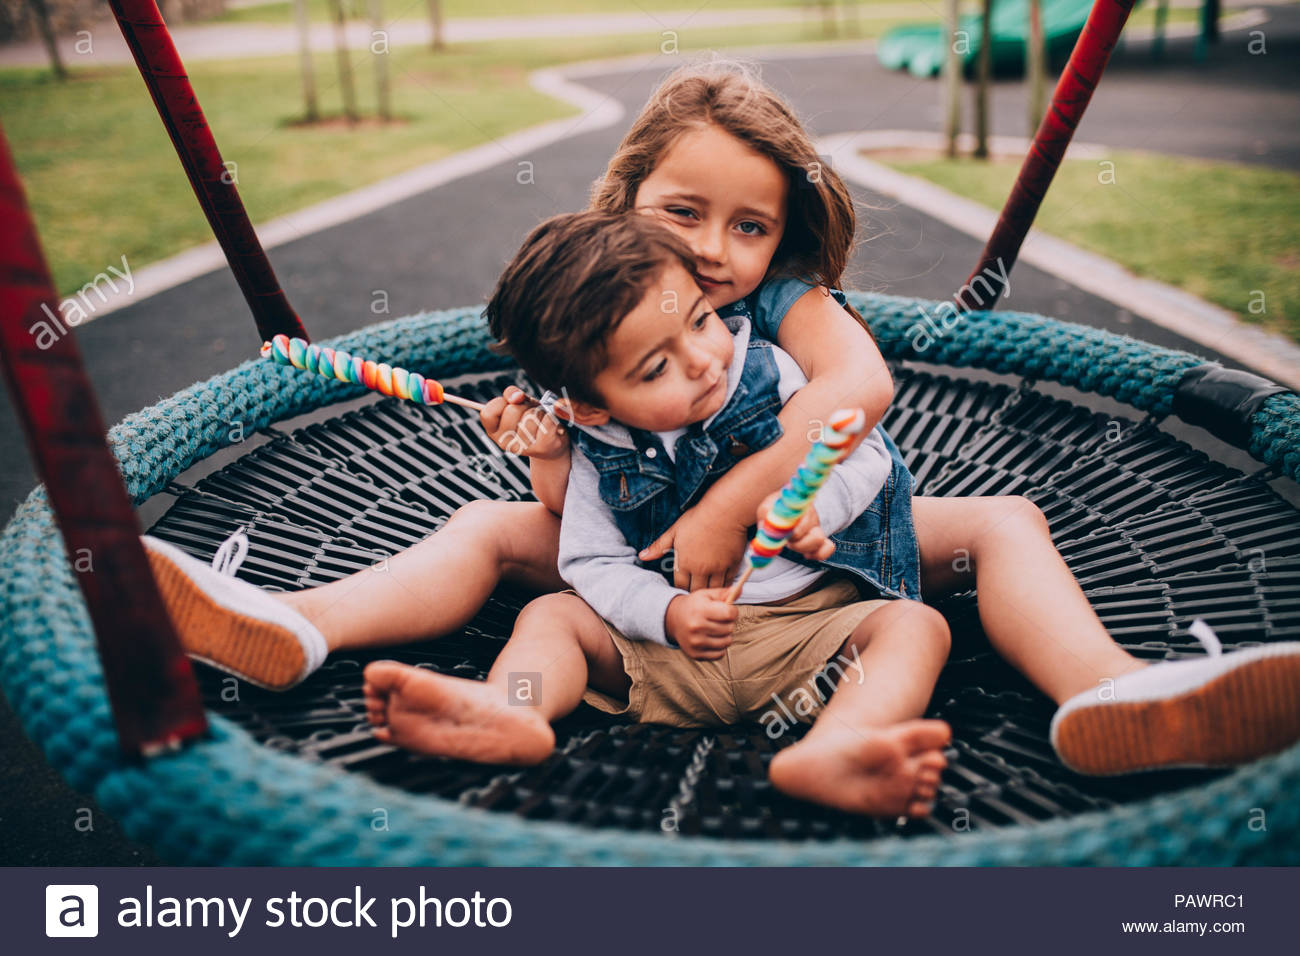 Happy children sitting on swing in park - Stock Image